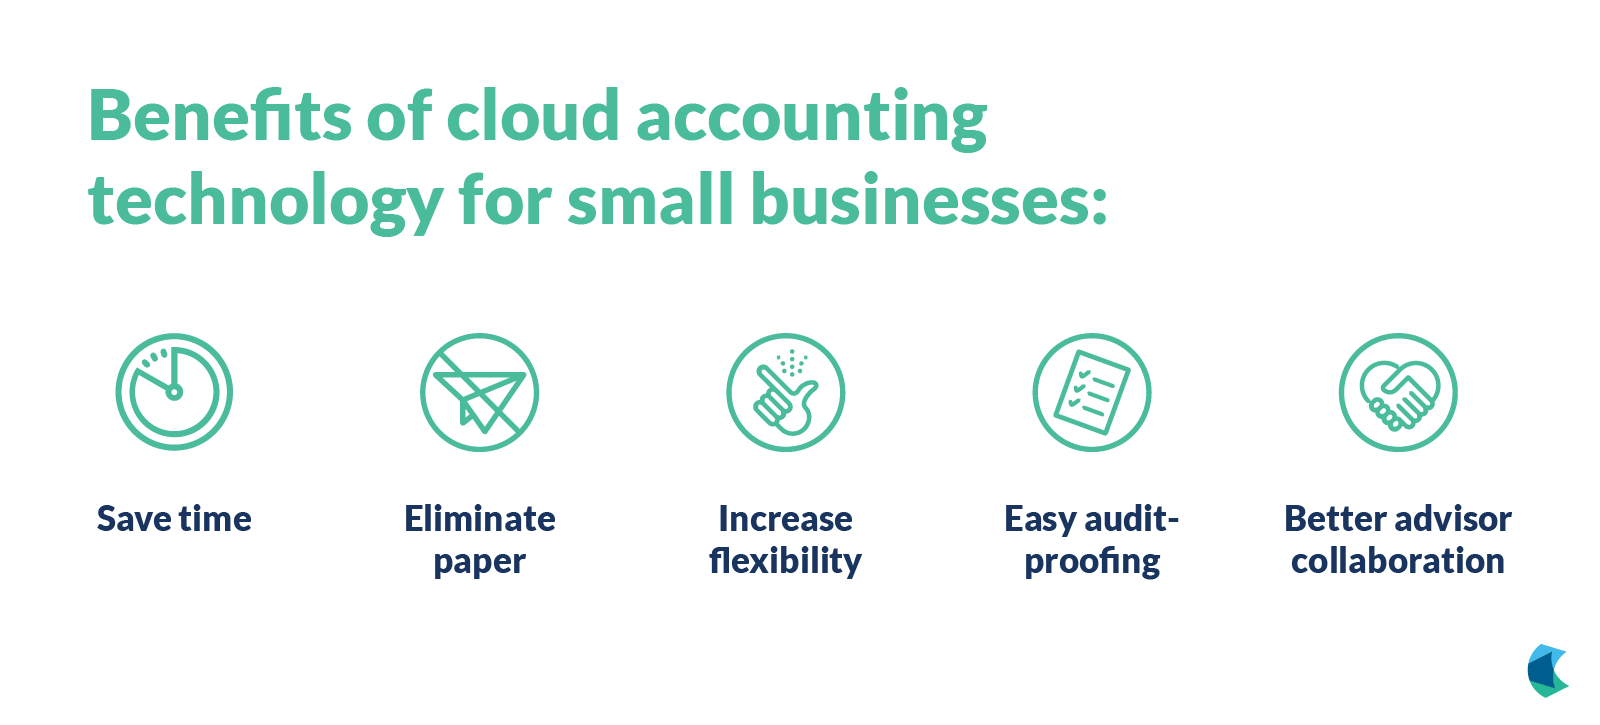 Small Business Benefits of Cloud Accounting